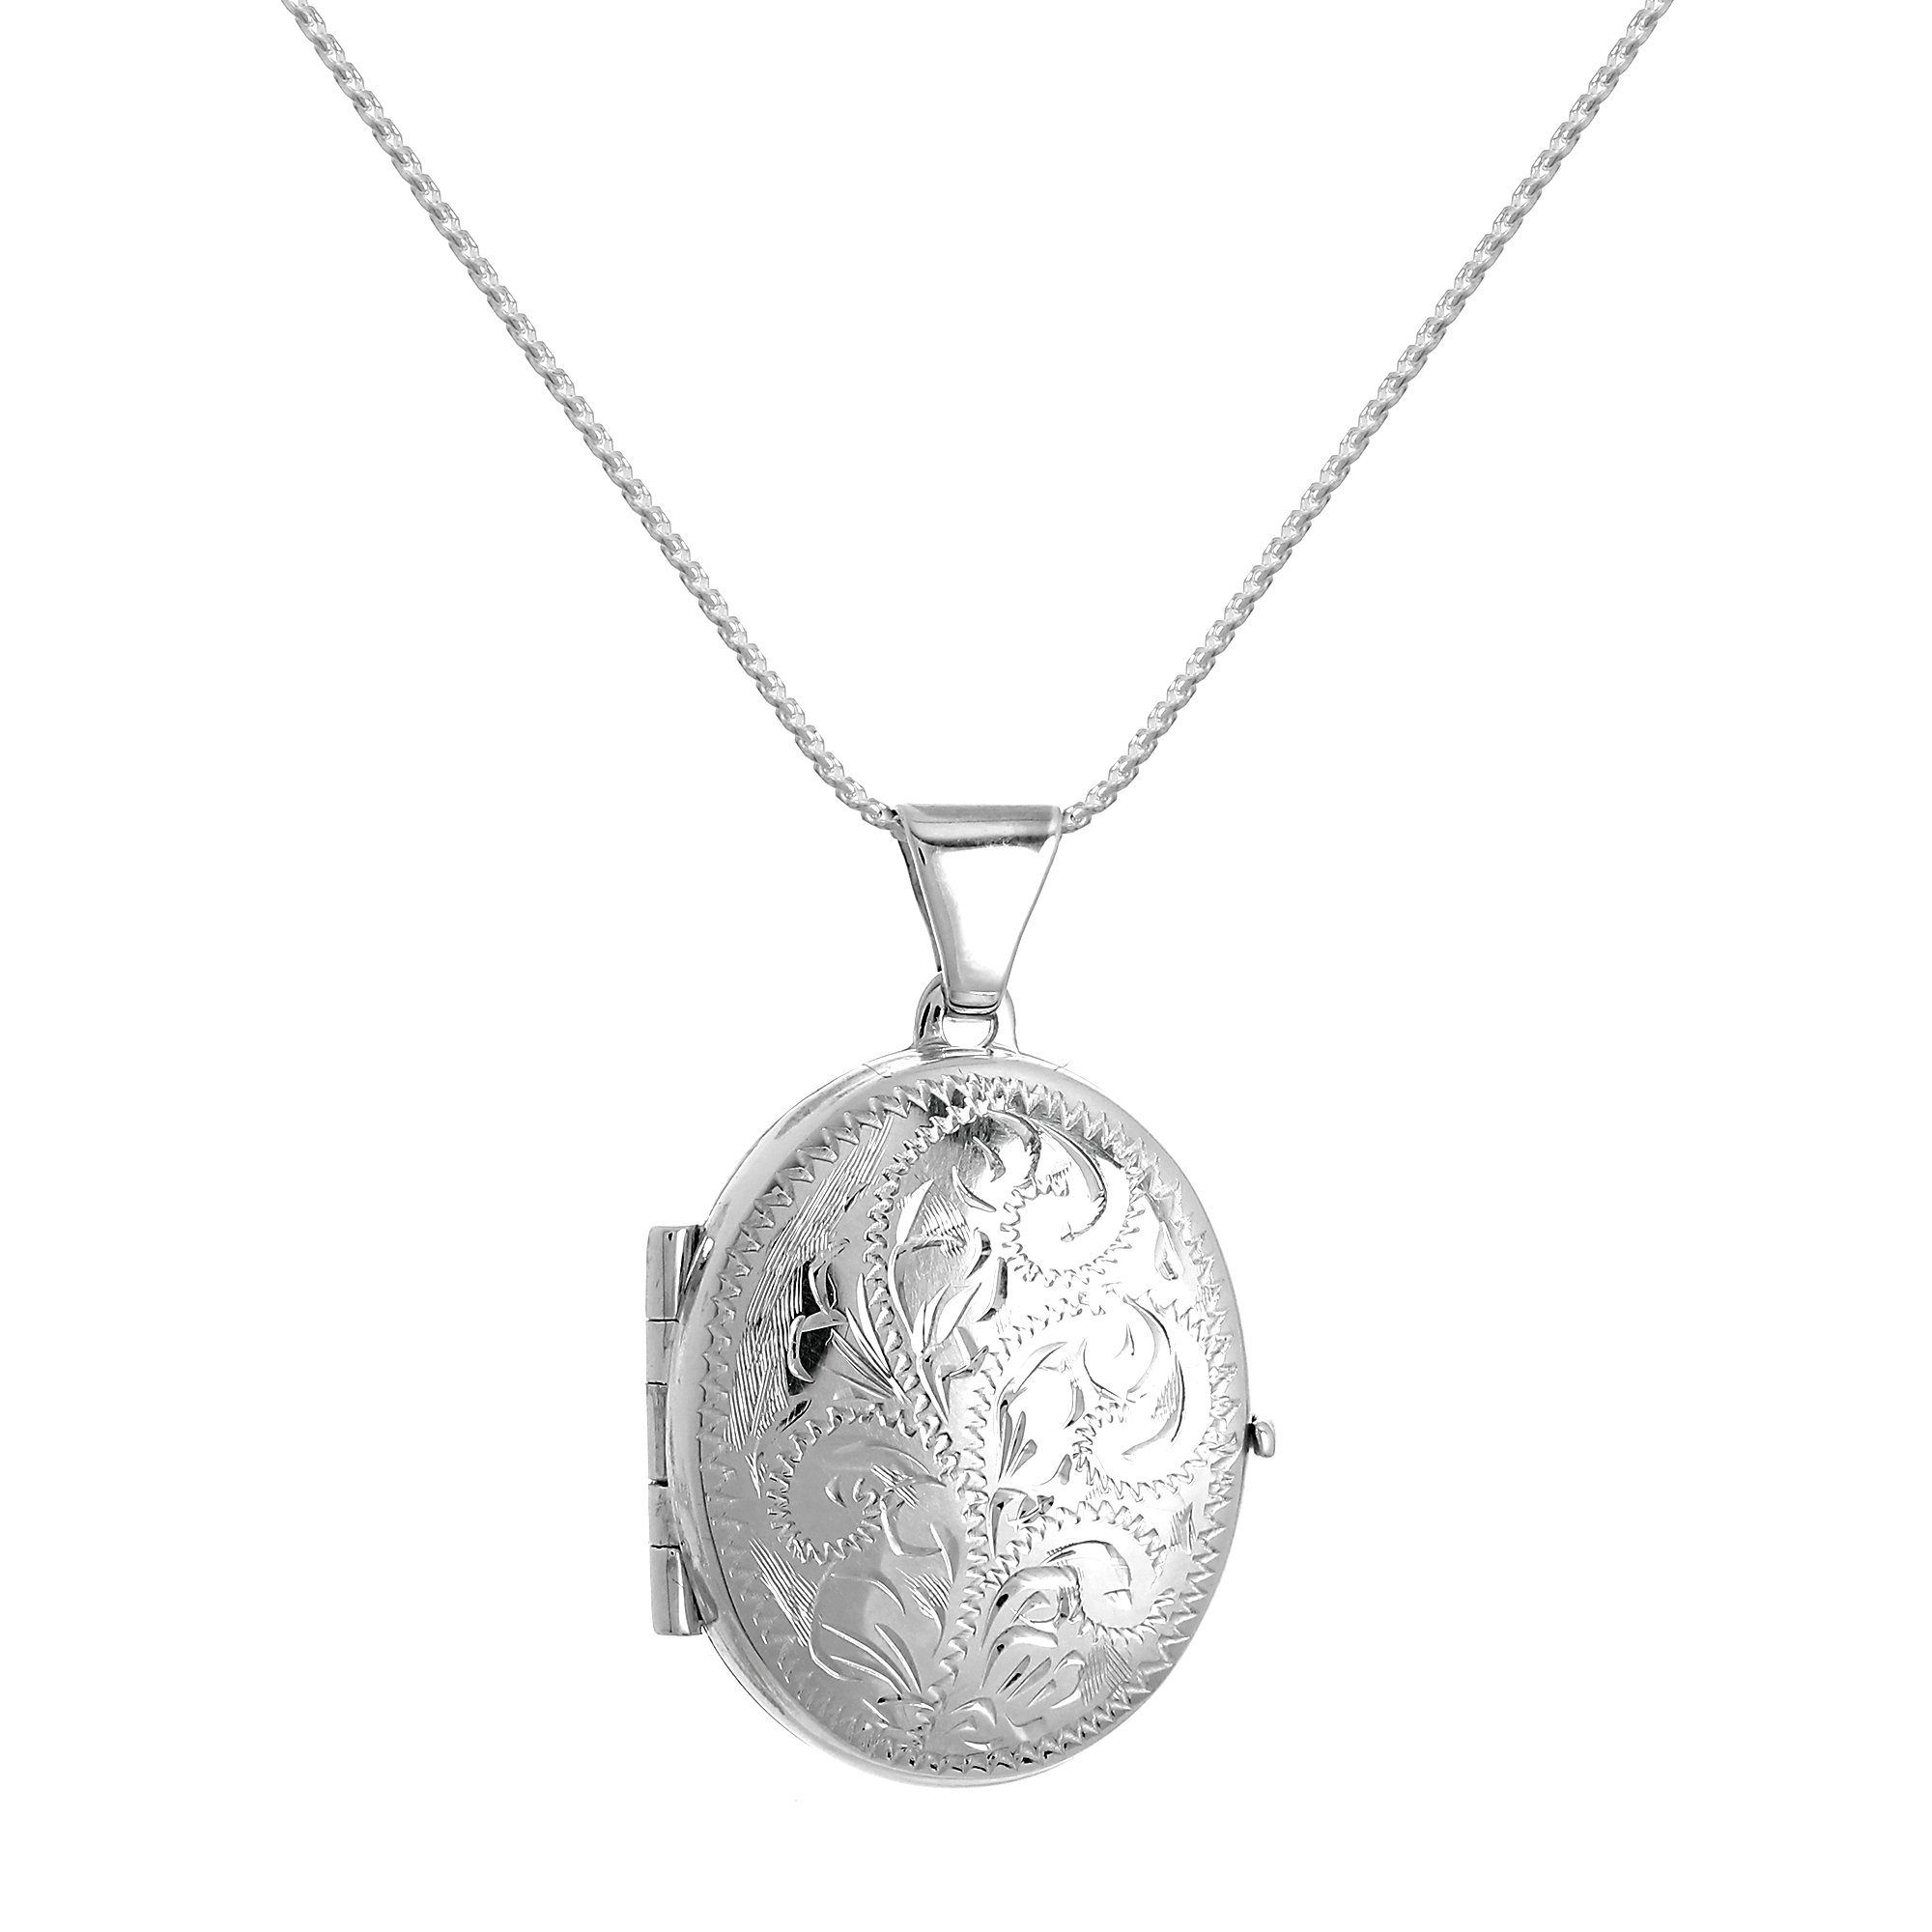 An image of Sterling Silver Engraved Oval 4 Photo Family Locket on 16 Inch Chain